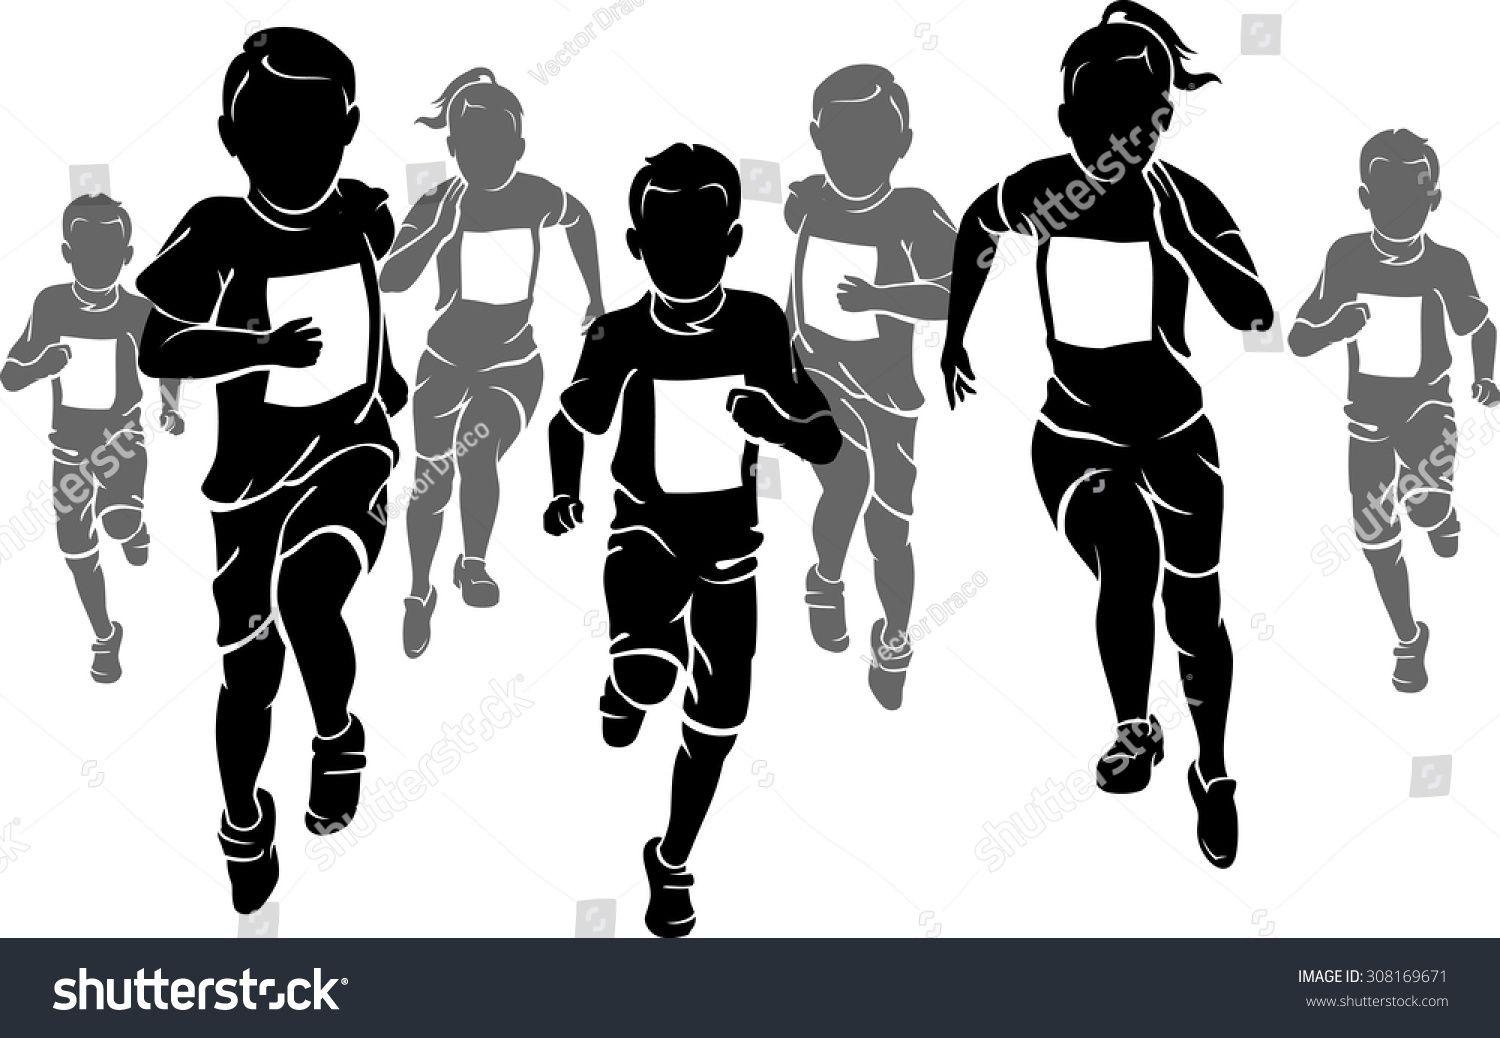 running with kids clipart black and white.